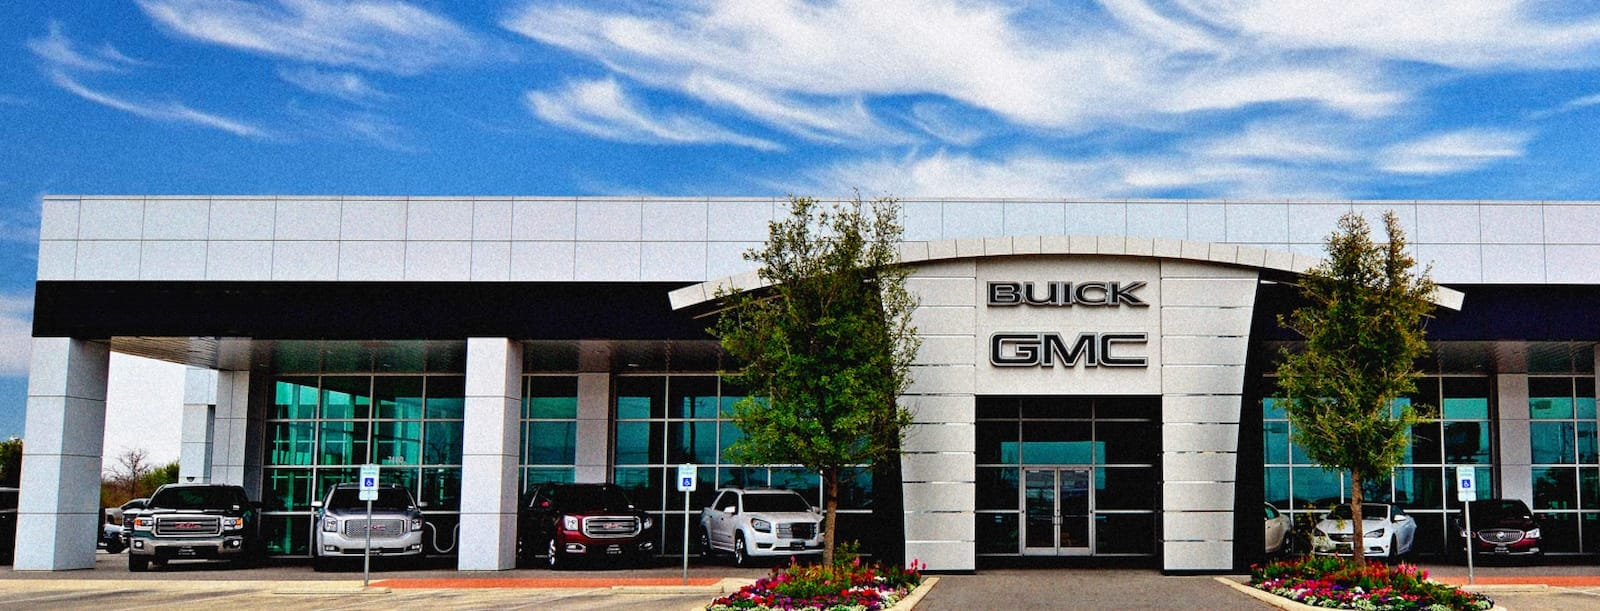 Barnes Crossing Chevrolet Buick Gmc Dealership